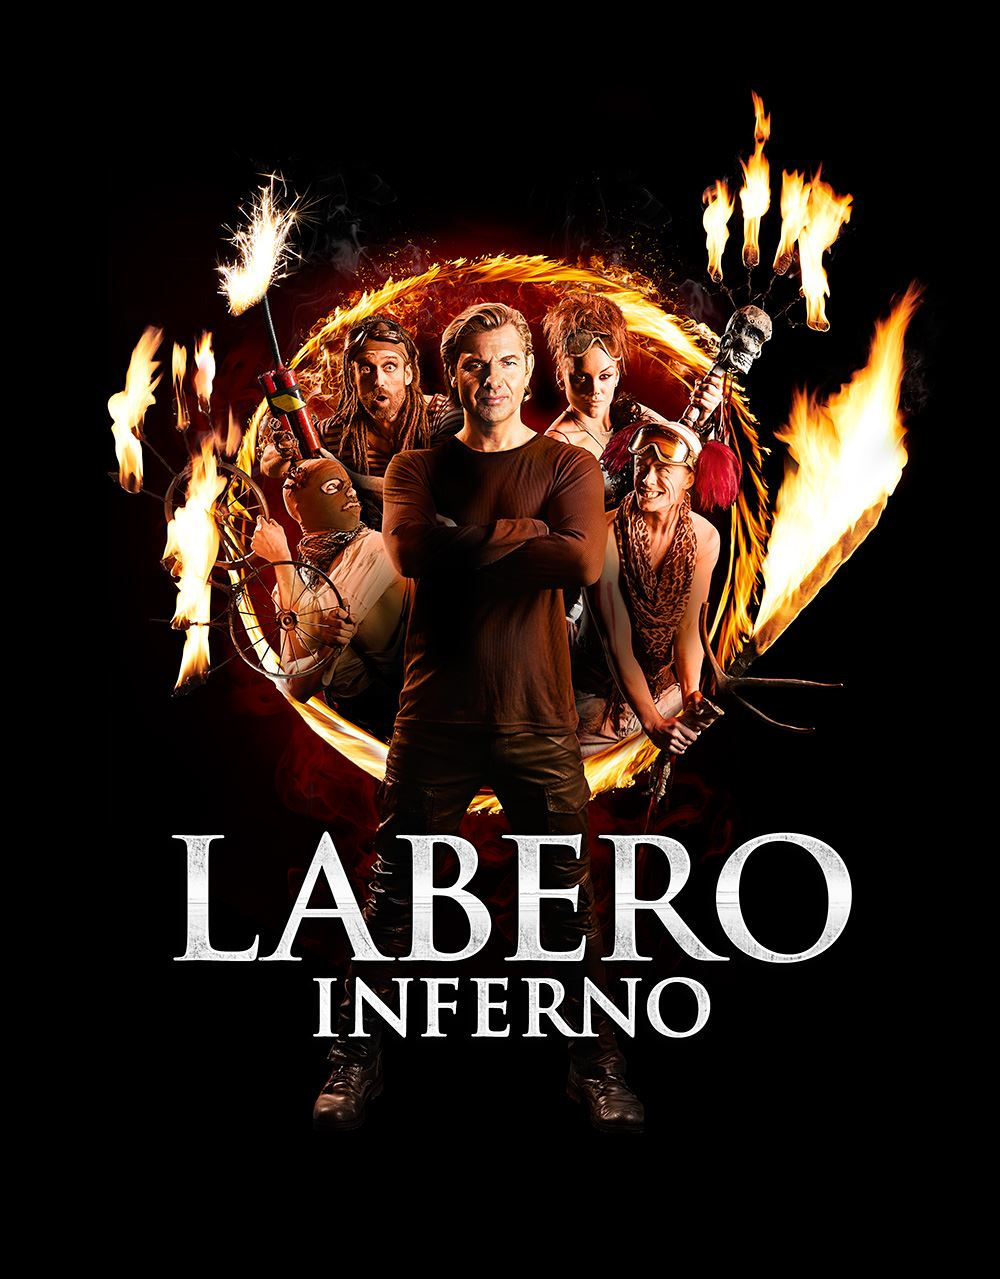 Labero Inferno